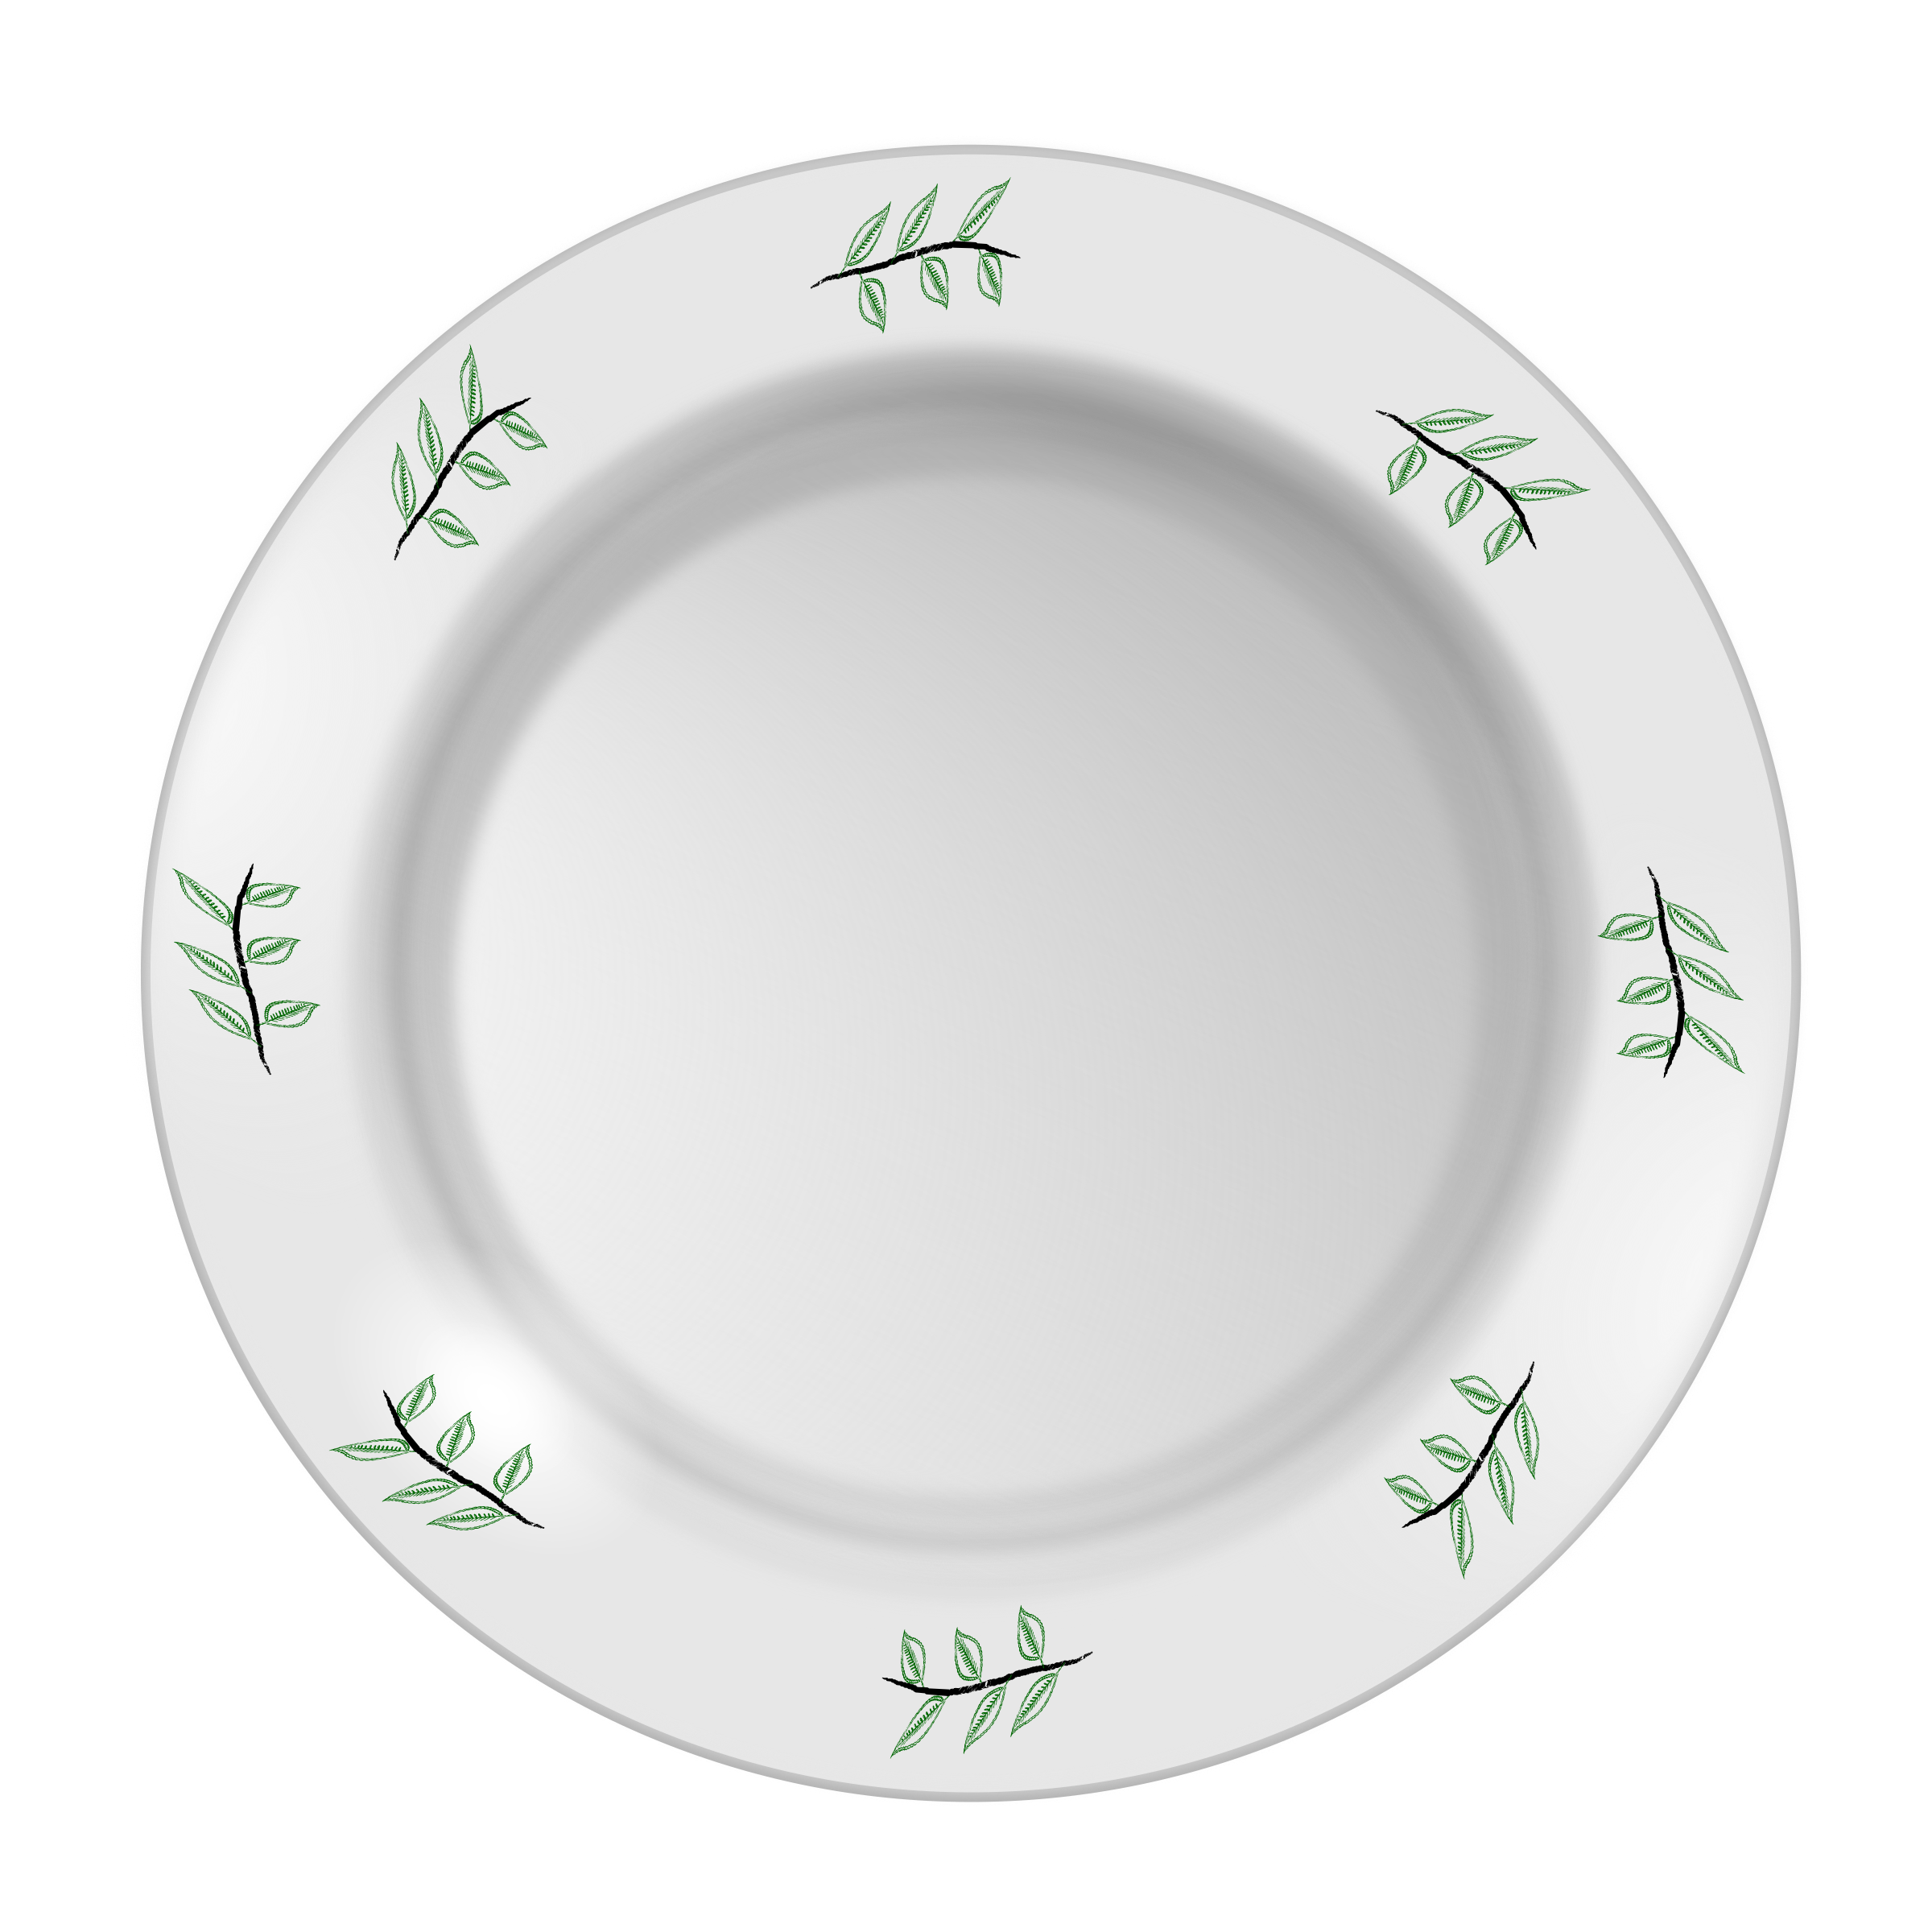 clipart plate with leaf pattern dinner plate clipart brown dinner plate clip art images